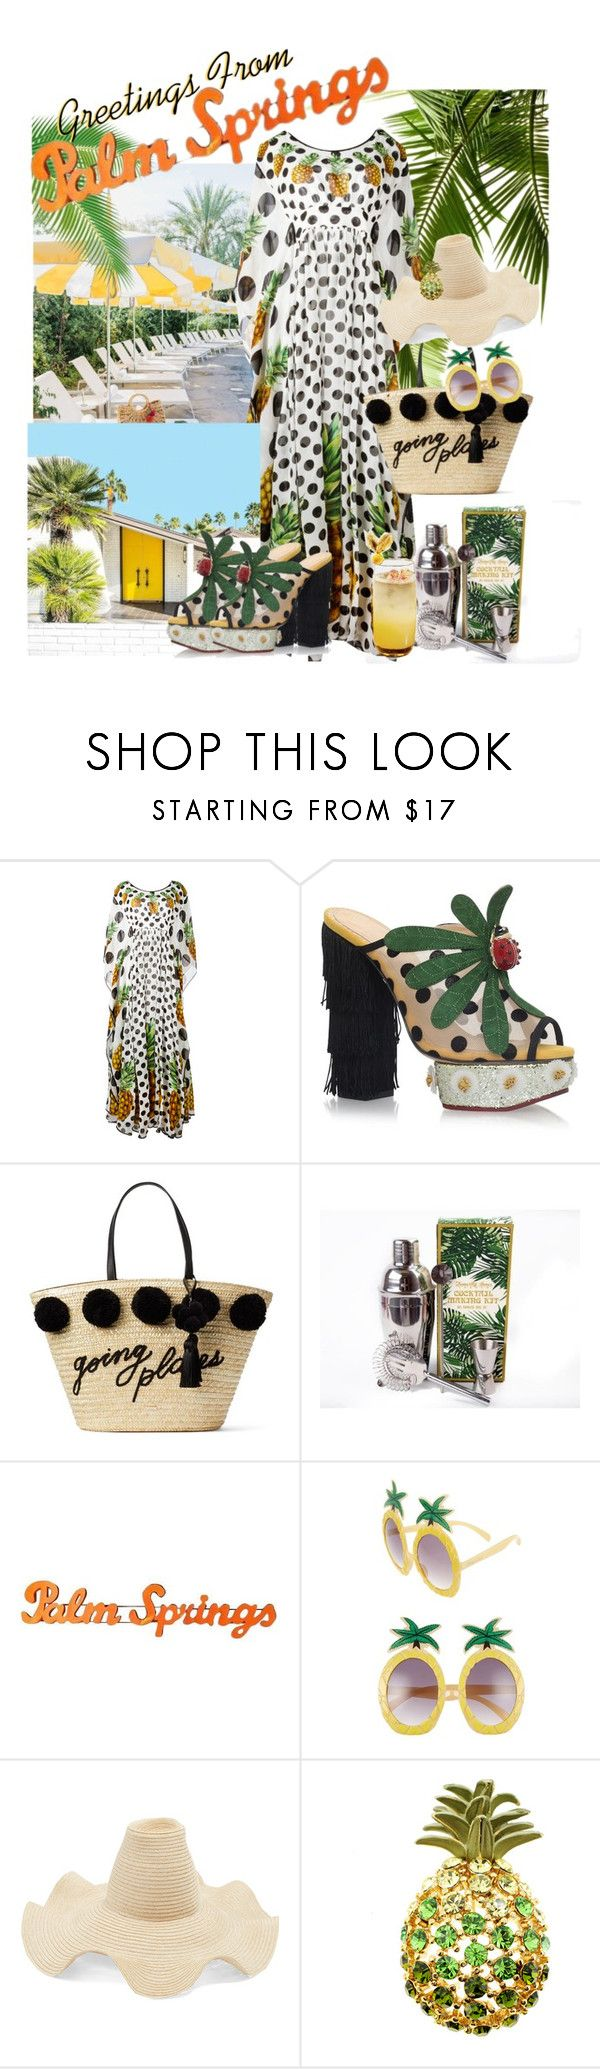 """""""Palm Springs #1"""" by mermaiden ❤ liked on Polyvore featuring Dolce&Gabbana, Charlotte Olympia, Kate Spade, Temerity Jones, Circus by Sam Edelman and Rosie Assoulin"""